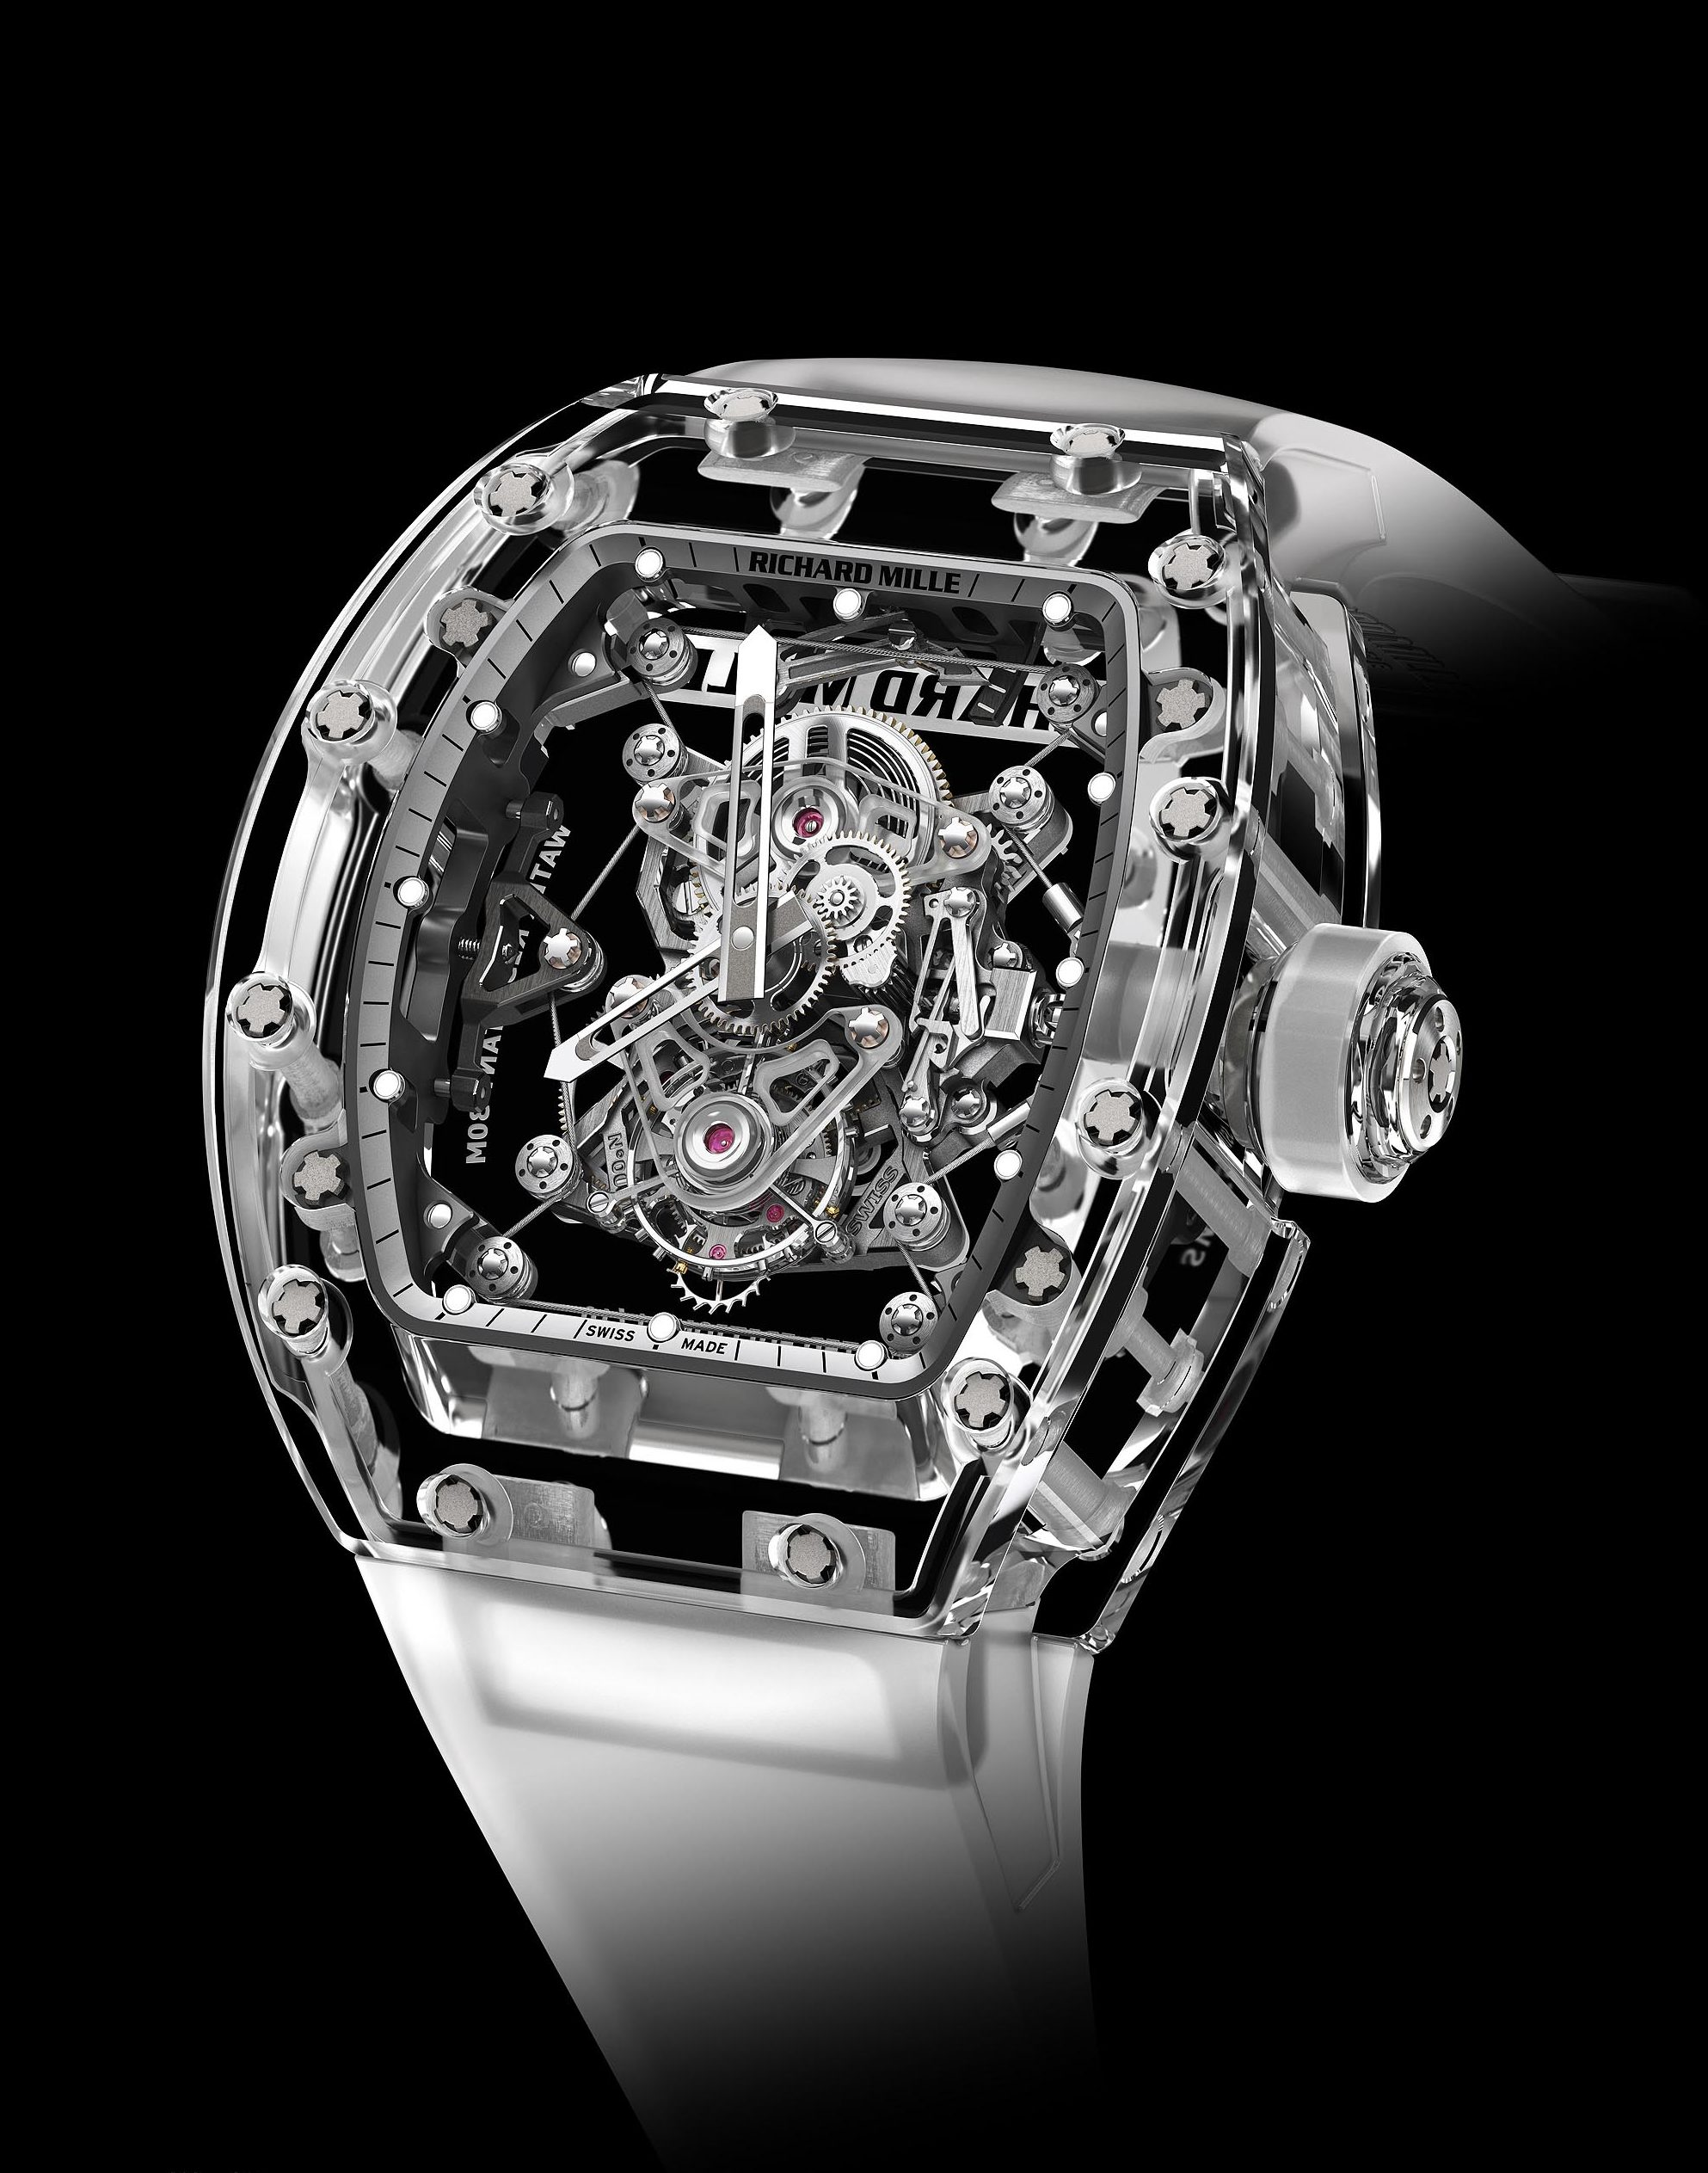 Why is it expensive: The 14 cr Richard Mille RM 56-02 Tourbillon Sapphire